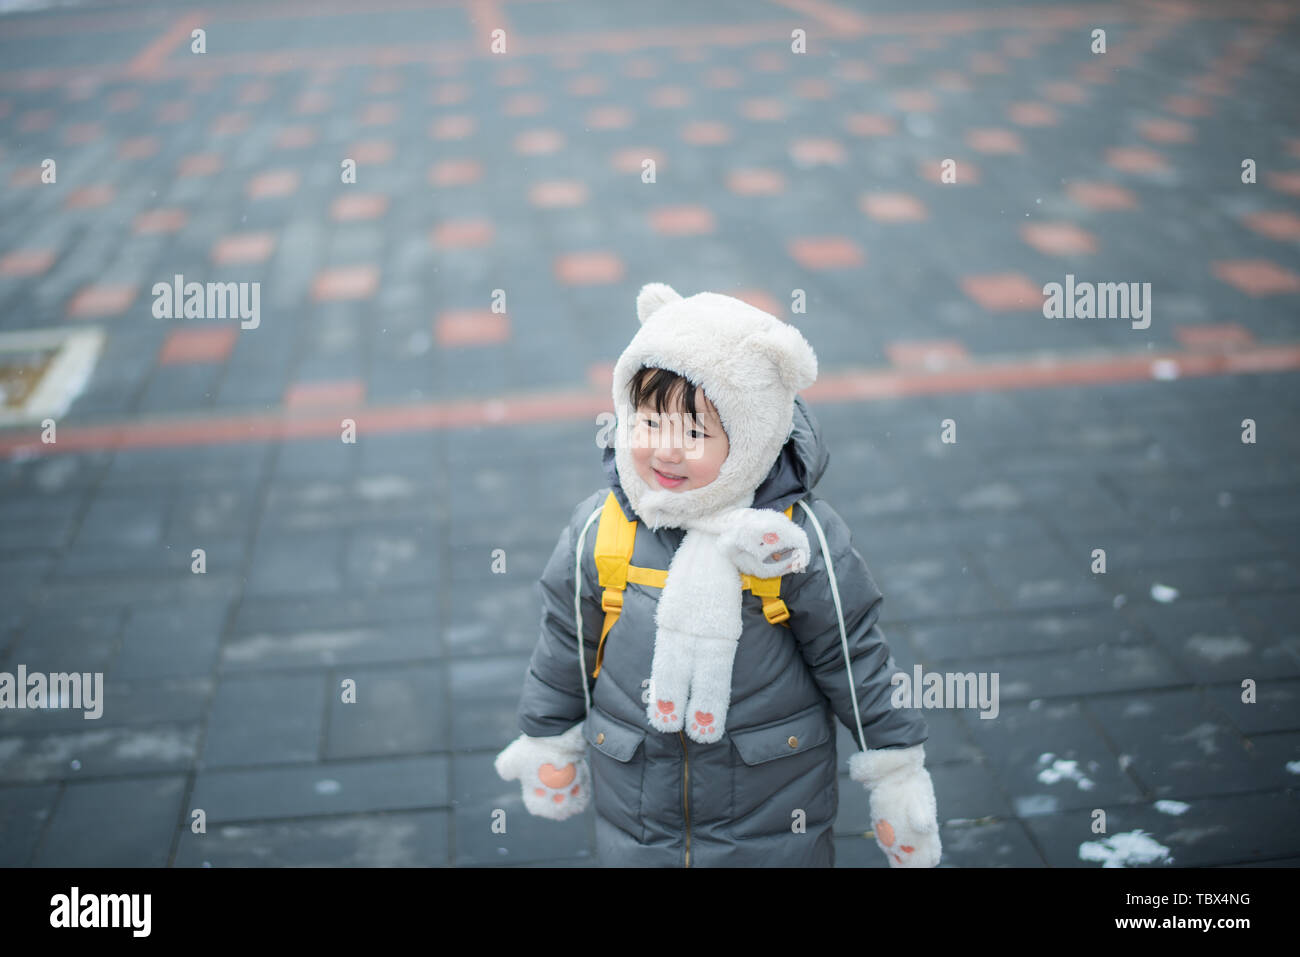 During the Spring Festival 2019, Beijing finally ushered in a snowfall. Children play snow and have fun with the snow. Stock Photo